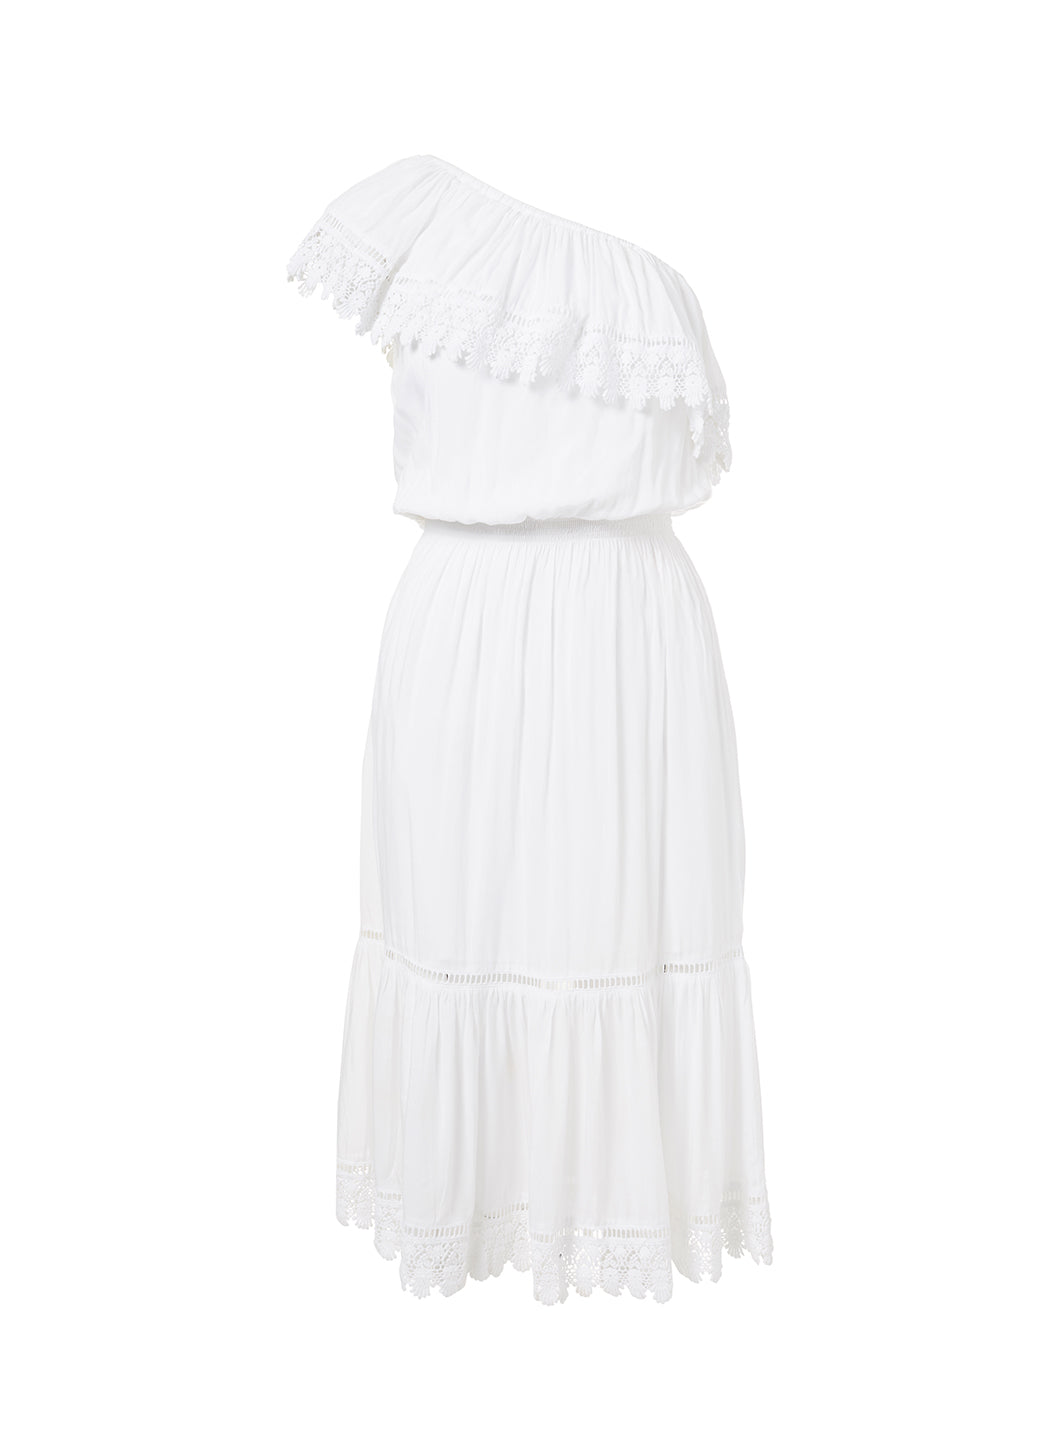 Jo White One Shoulder Embroidered Frill Midi Dress - Melissa Odabash Beachwear